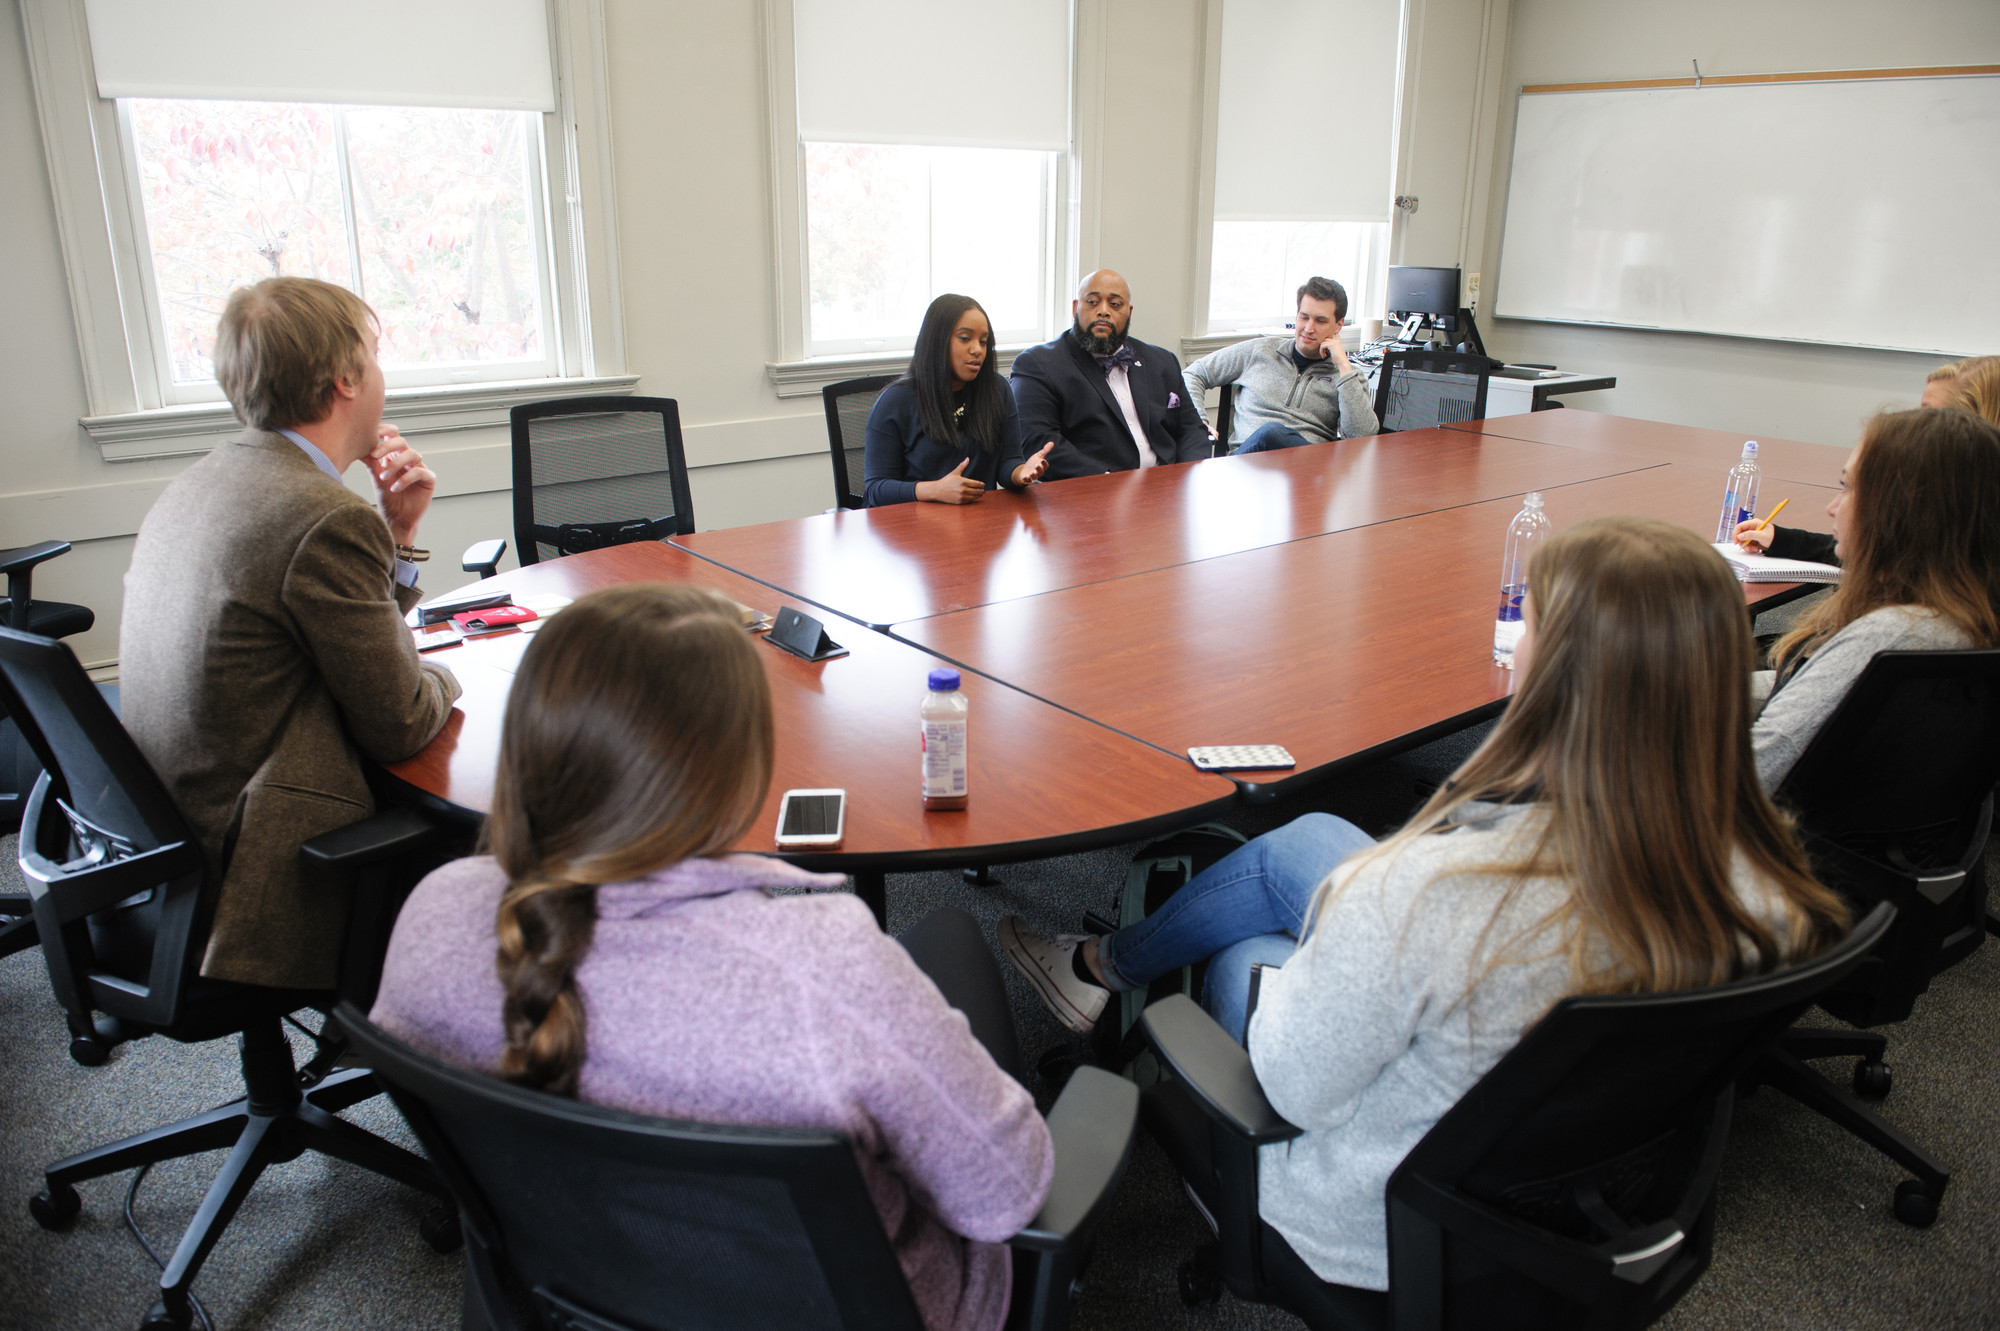 students and guest speakers gathered around a classroom table